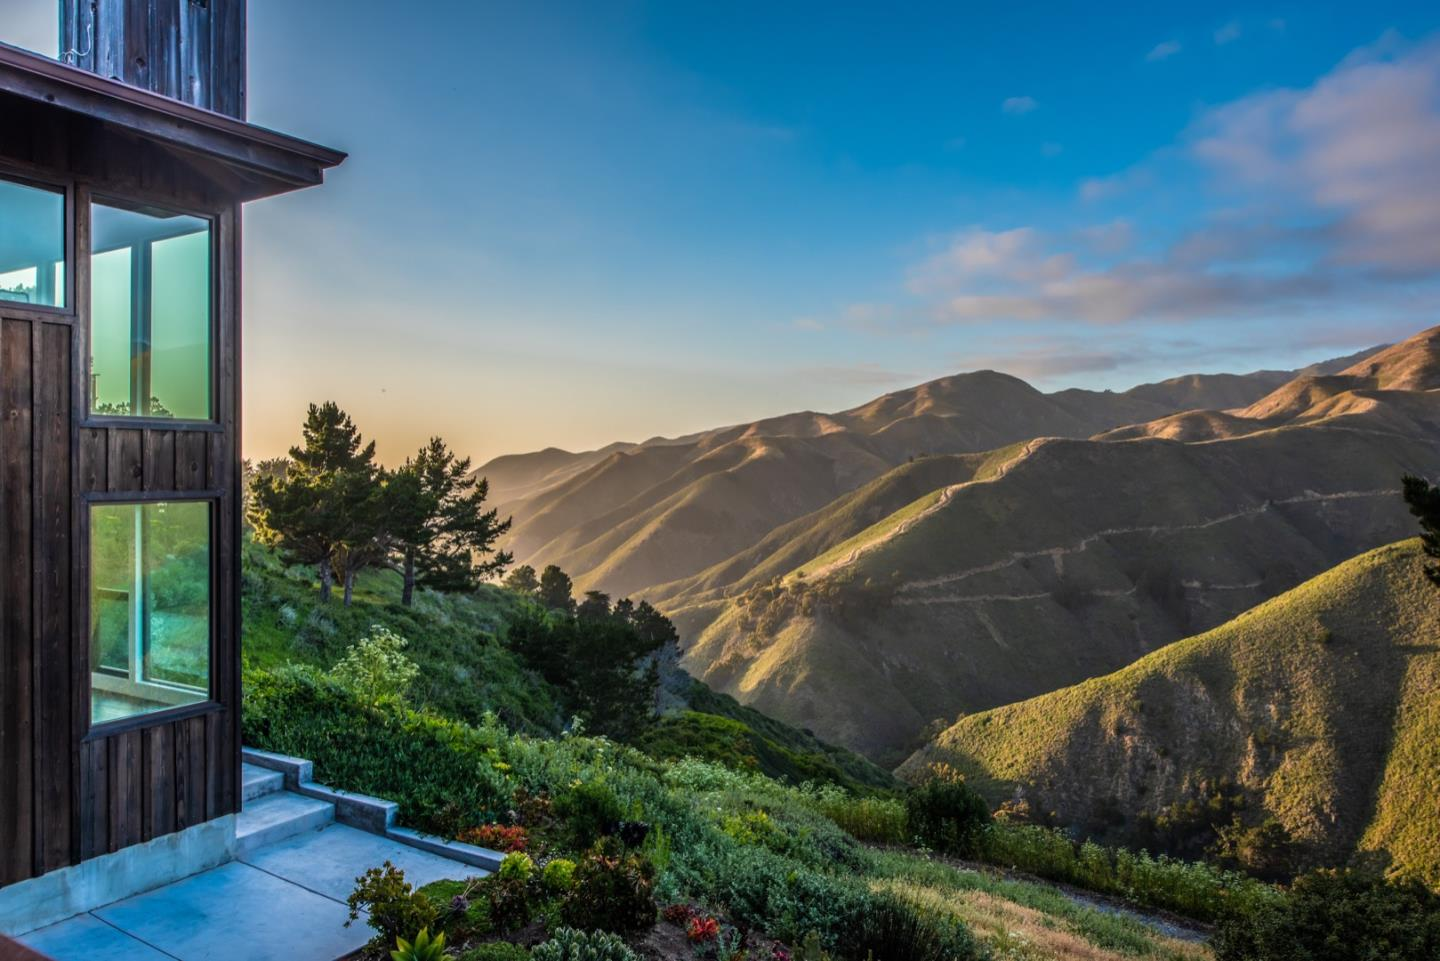 Designed by renowned Big Sur architect Mickey Muennig, who is known for his work at the luxury eco hotel Post Ranch Inn, this magical home comprised of walls of windows soaks in the environment day and night. The main house has four bedrooms all with incomparable views plus an additional one room guest cottage.  In an exclusive area above Garrapata State Beach, this 10-acre property is a masterpiece that magnificently blends the Pacific's grand horizon and the rolling landscapes of the Santa Lucia mountains into luxury.  The finest craftsmanship and materials meld with the environment harmoniously to create a sophisticated and relaxed-vibe escape that is only fifteen minutes from the town of Carmel.